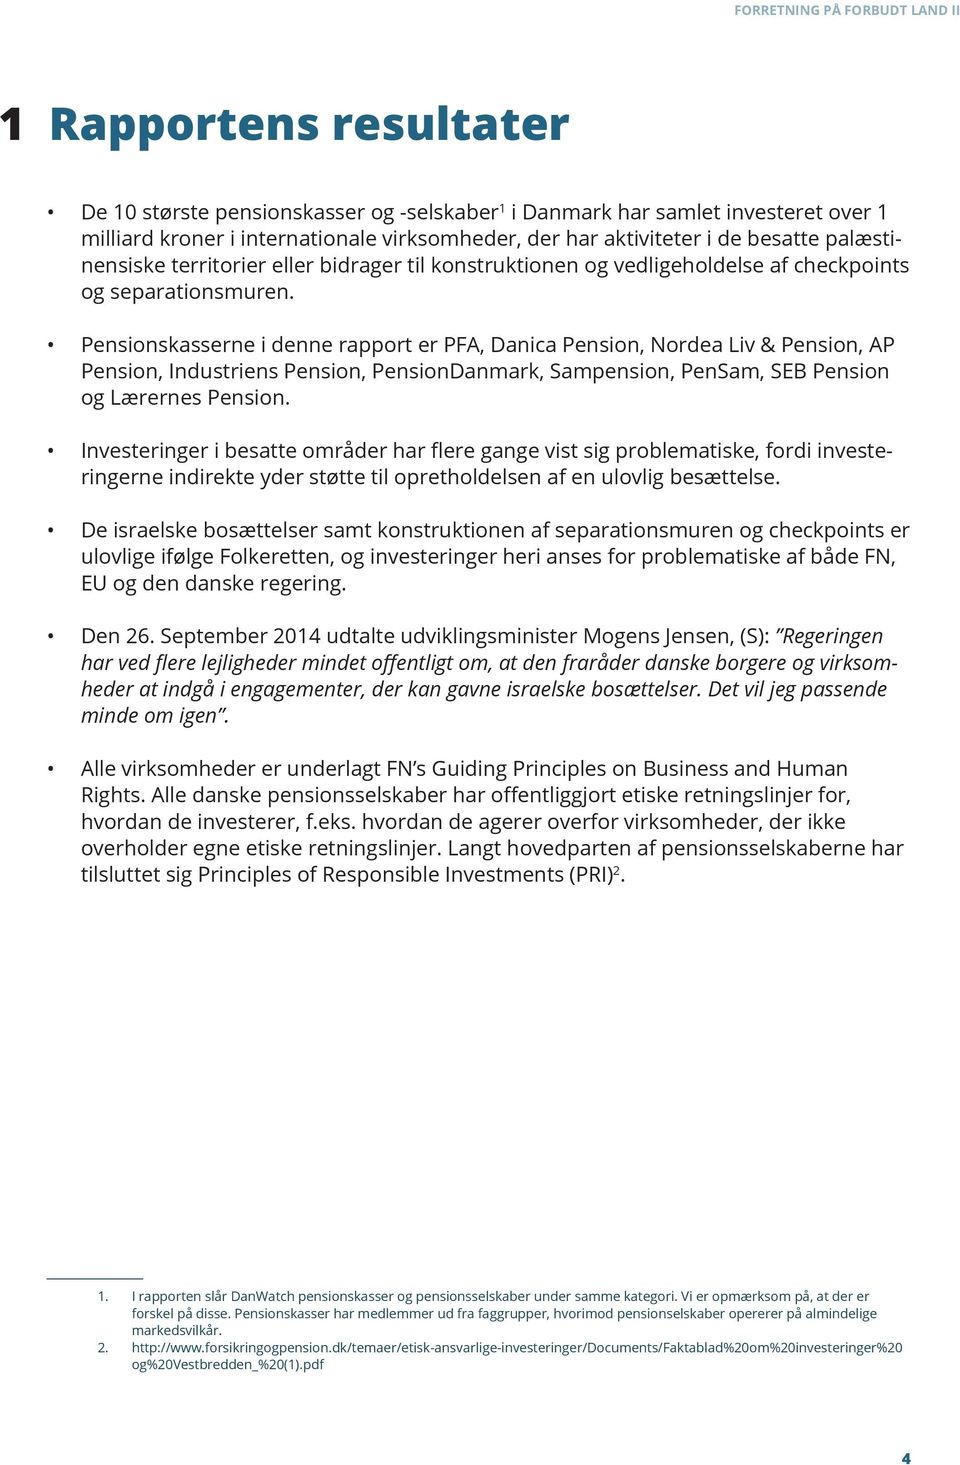 Pensionskasserne i denne rapport er PFA, Danica Pension, Nordea Liv & Pension, AP Pension, Industriens Pension, PensionDanmark, Sampension, PenSam, SEB Pension og Lærernes Pension.